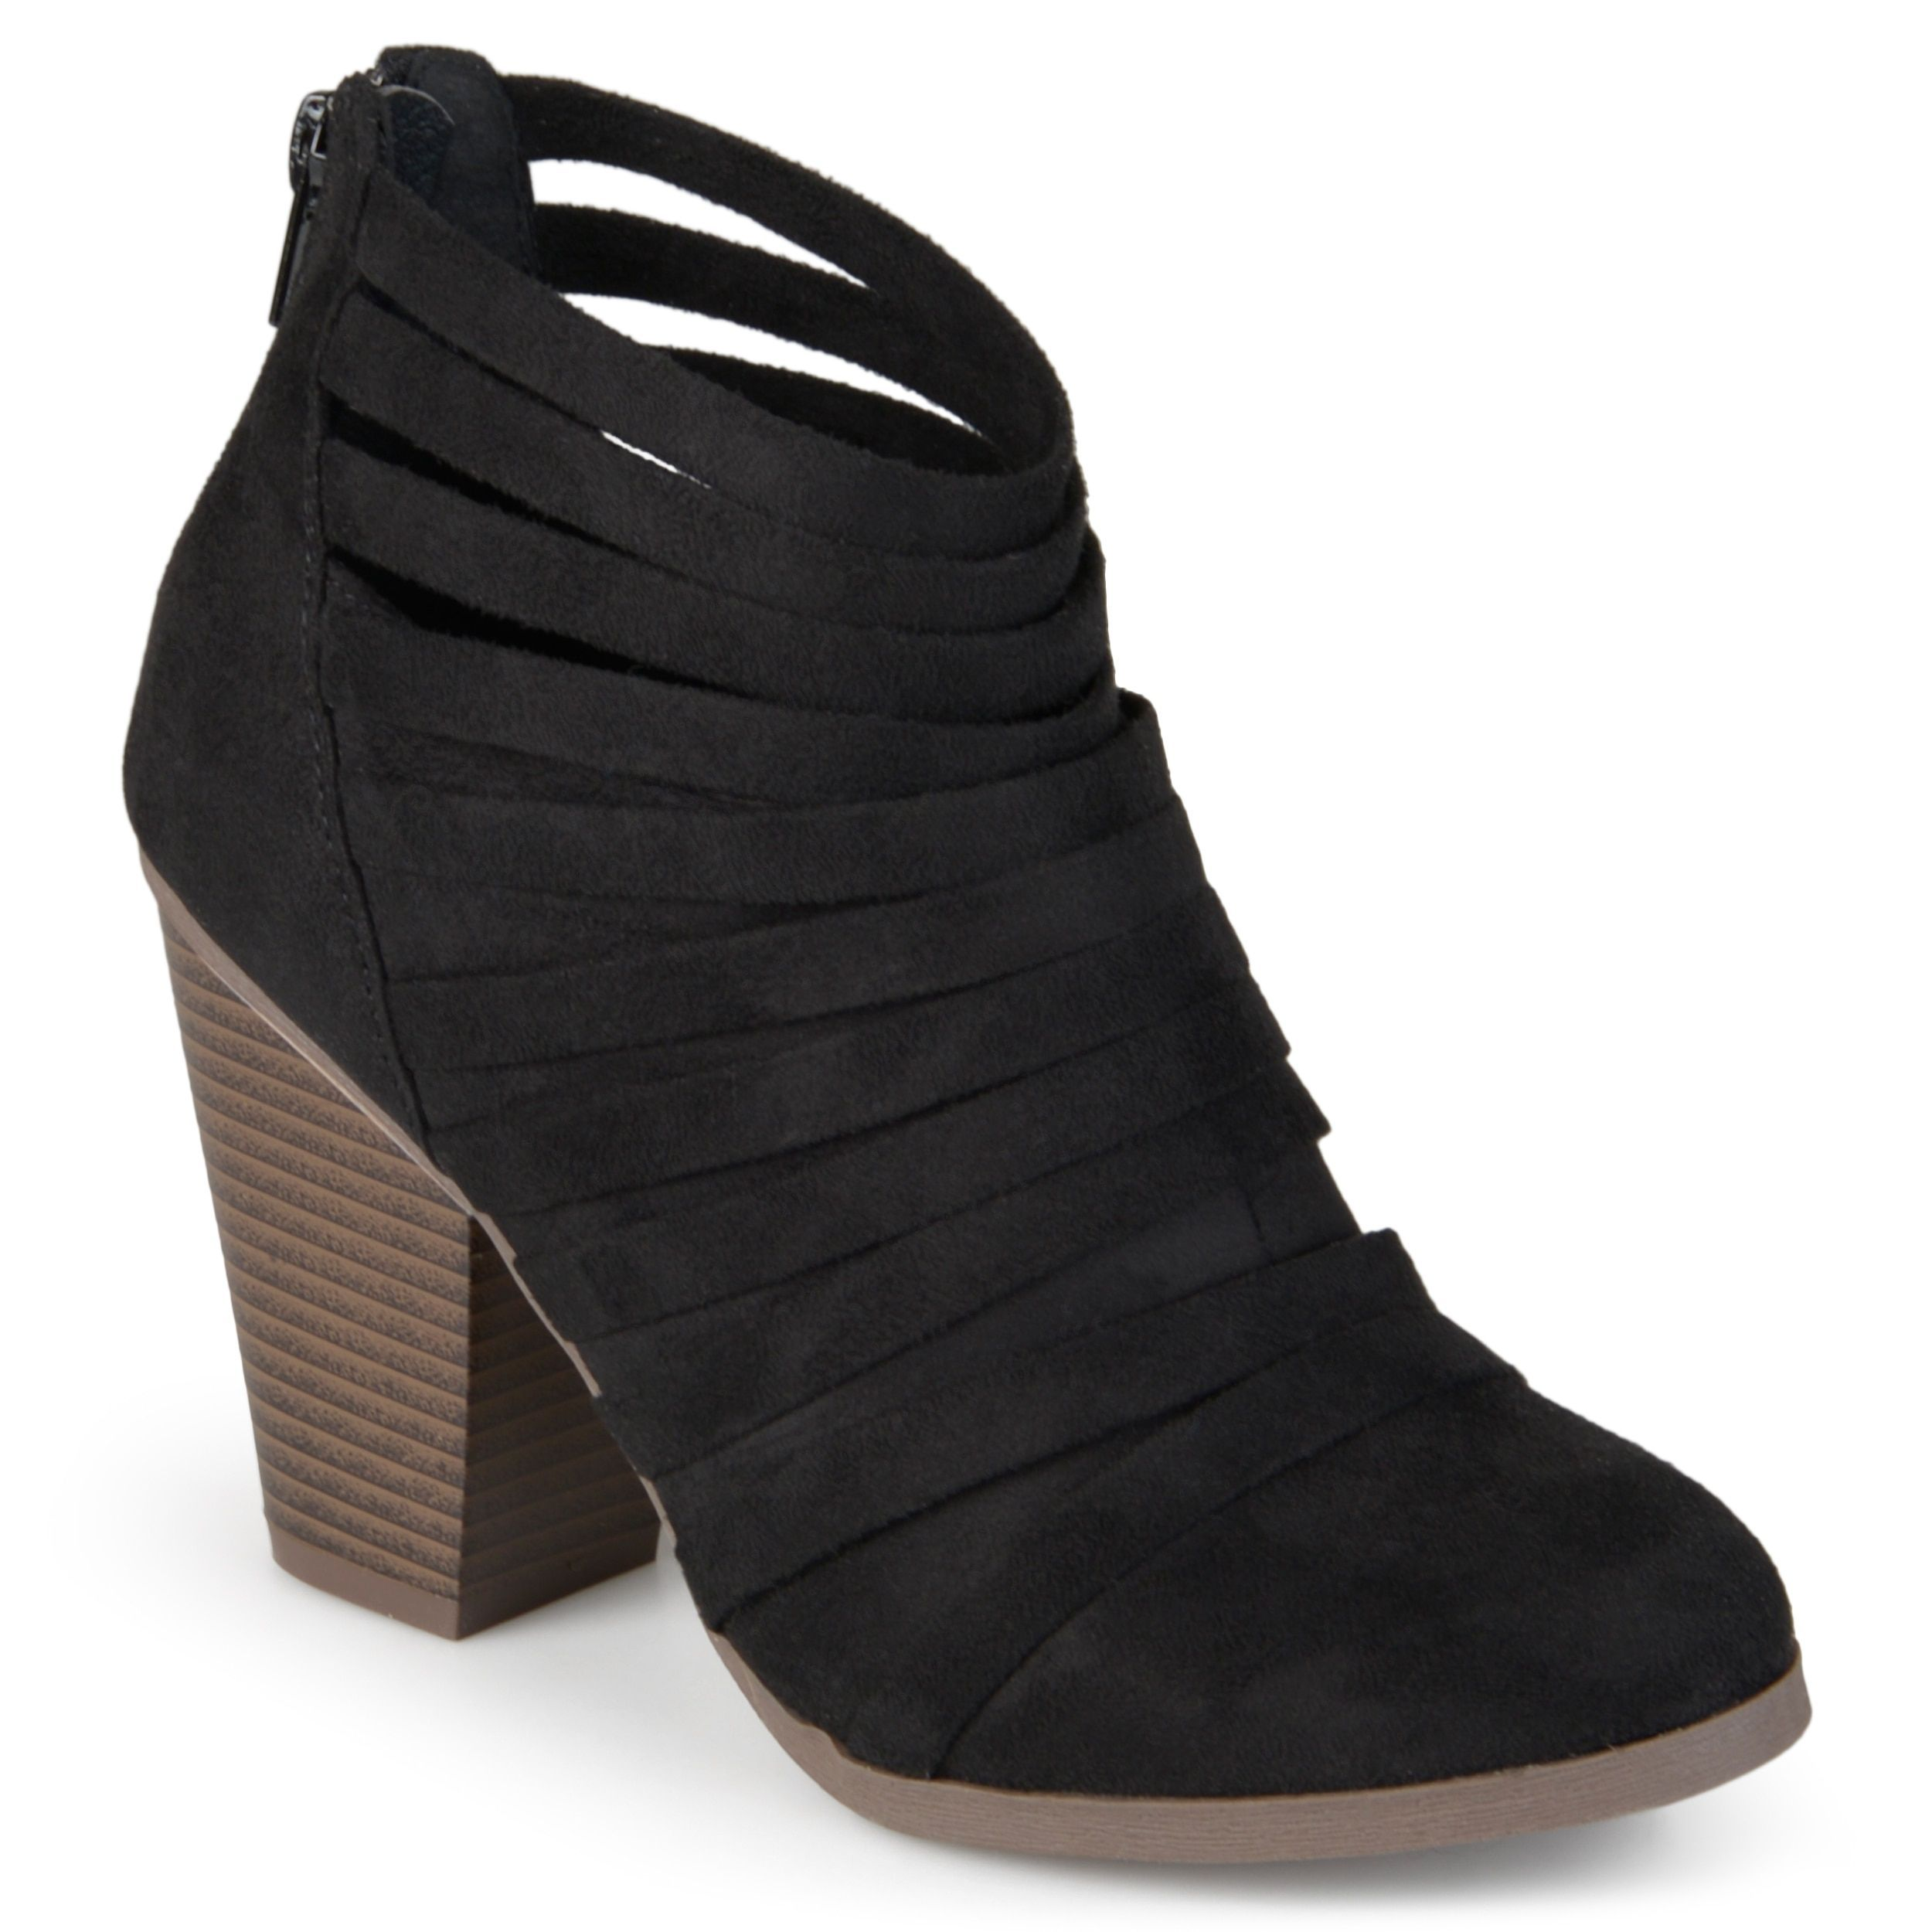 e62f3ca56 Journee Collection Women's 'Selena' Faux Suede Strappy Ankle Booties (Black-  11), Black